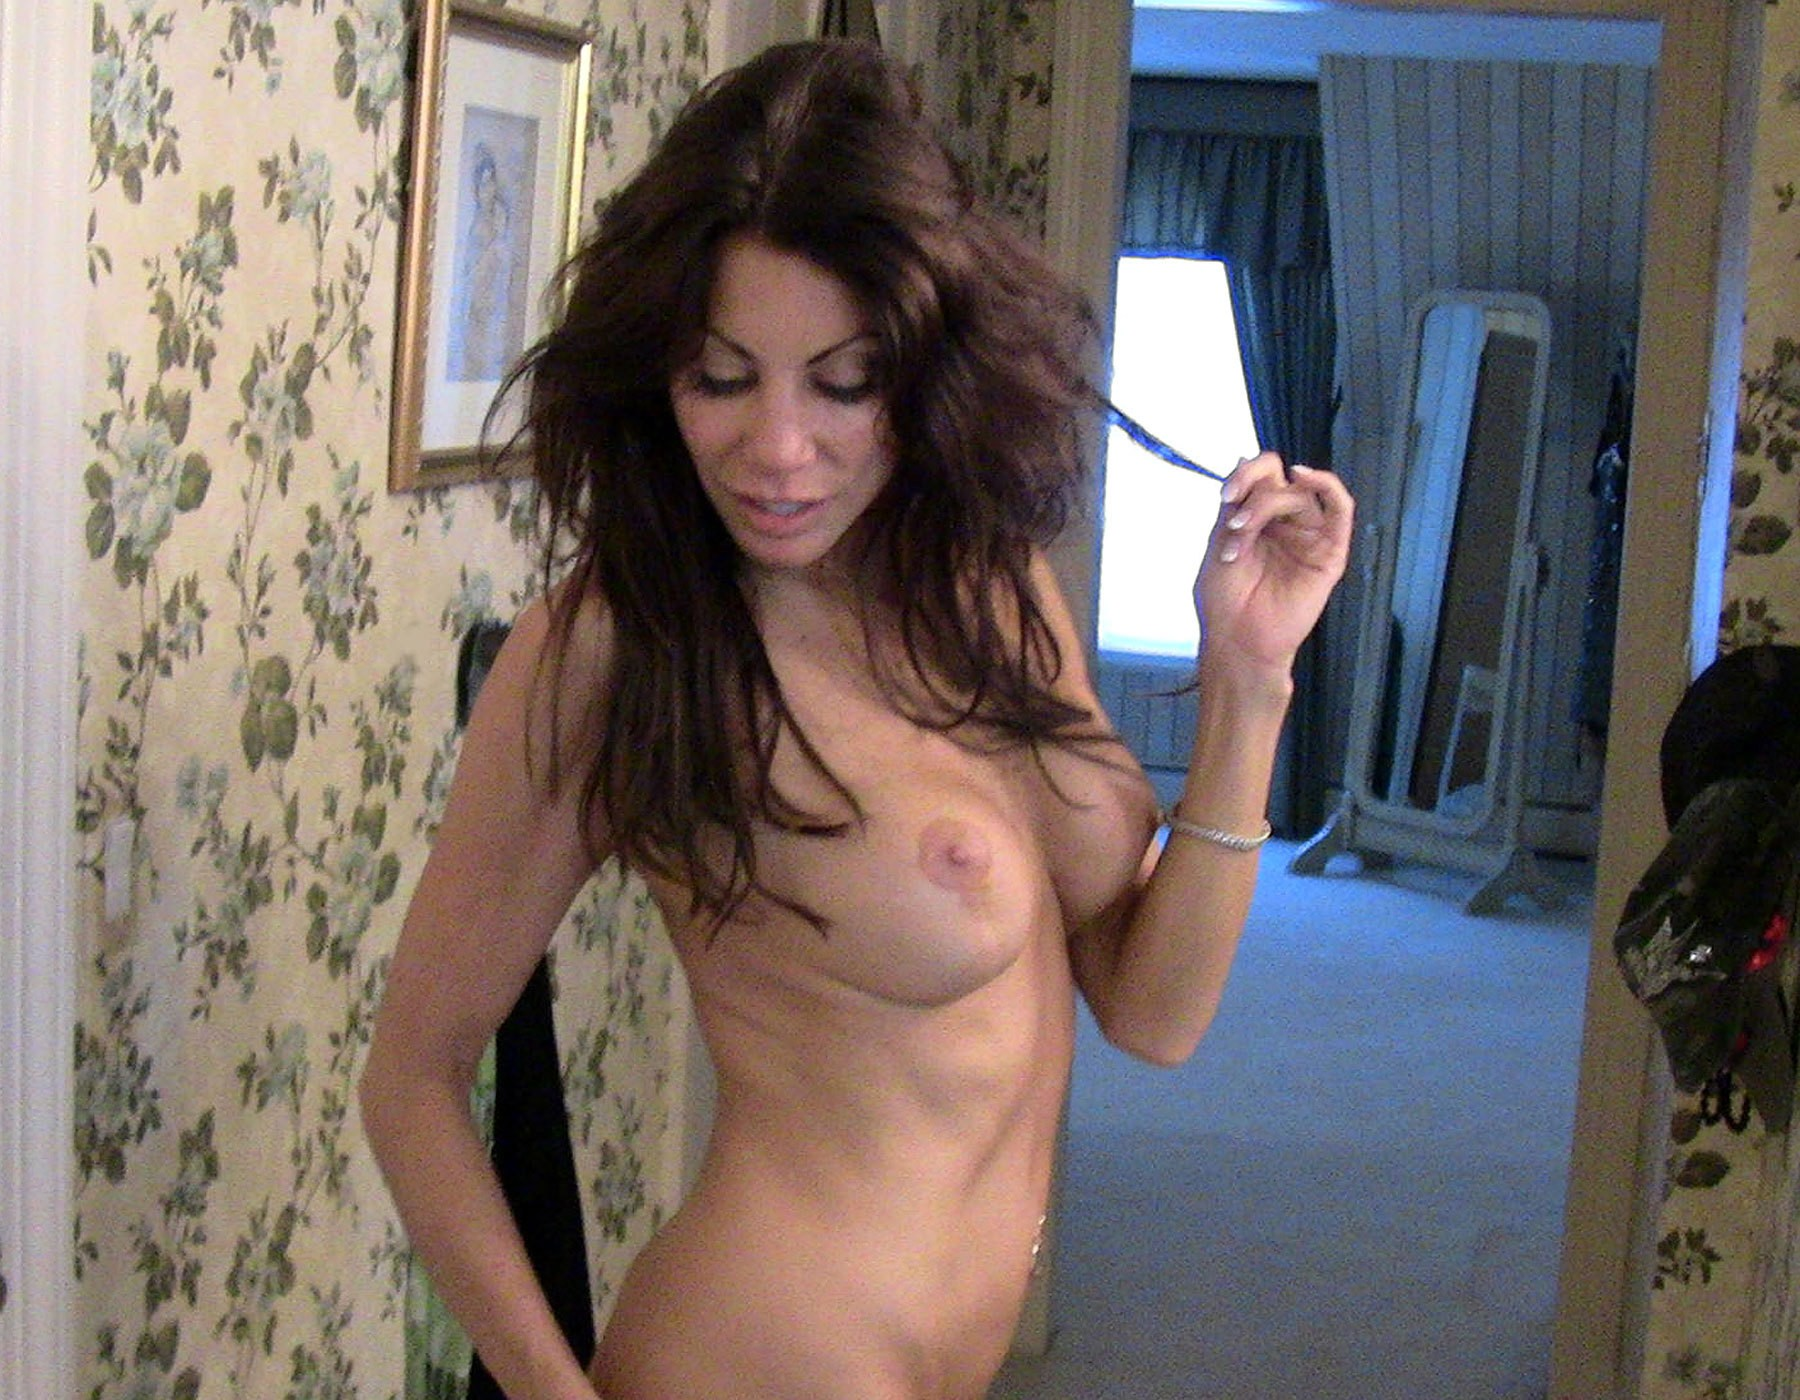 New jersey housewives sex tape